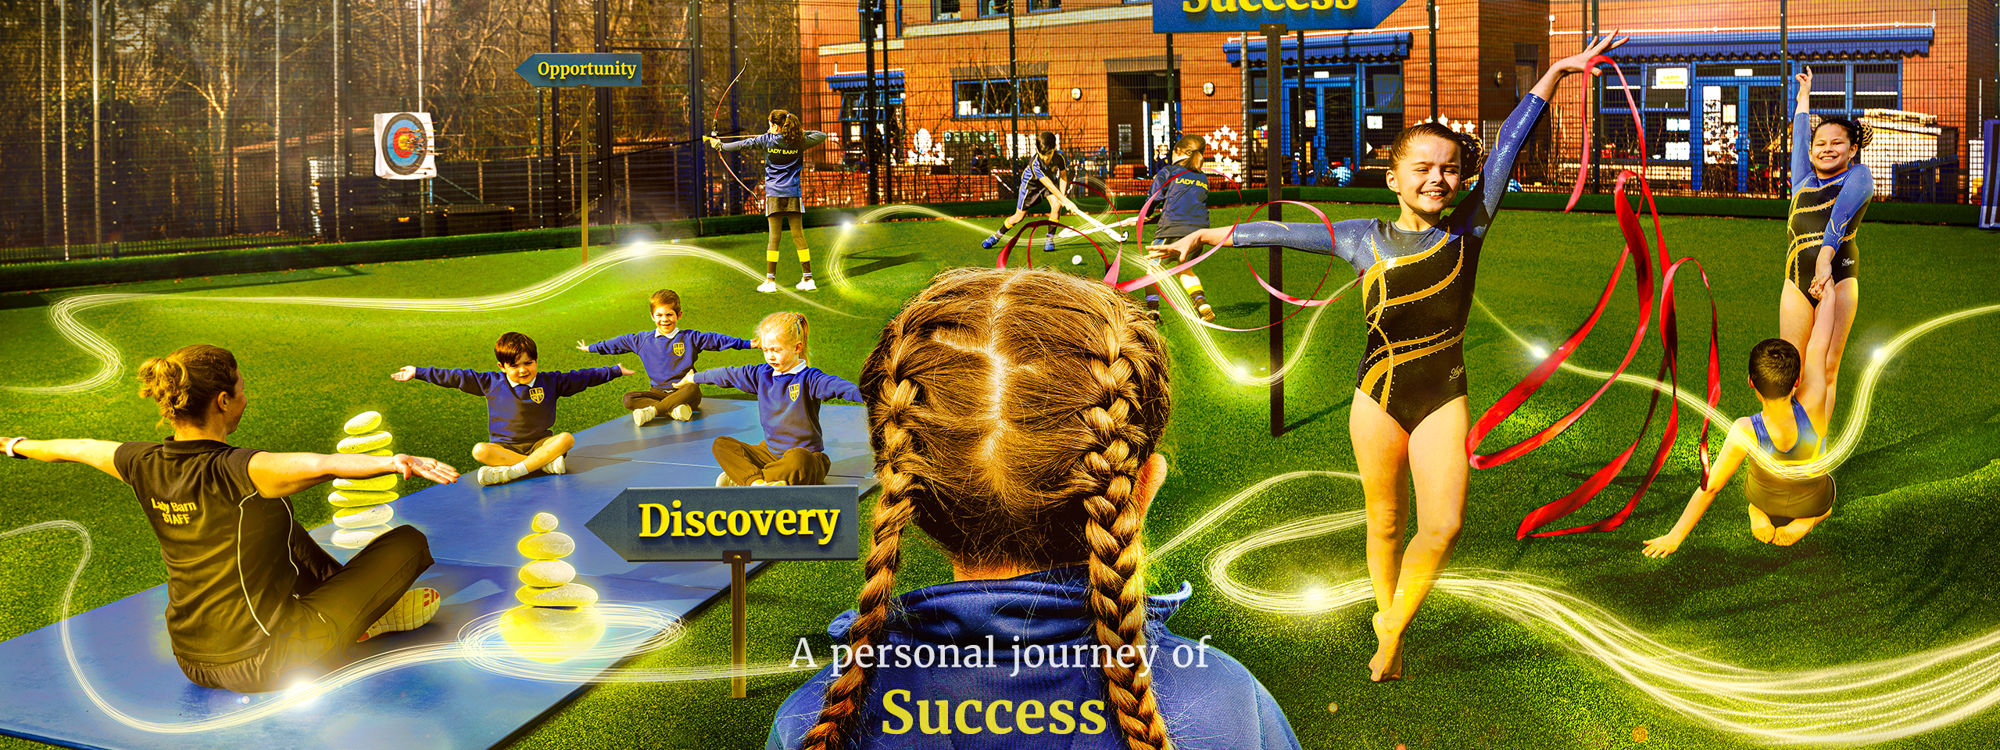 Lady Barn House School Discovery Opportunity Success Sport